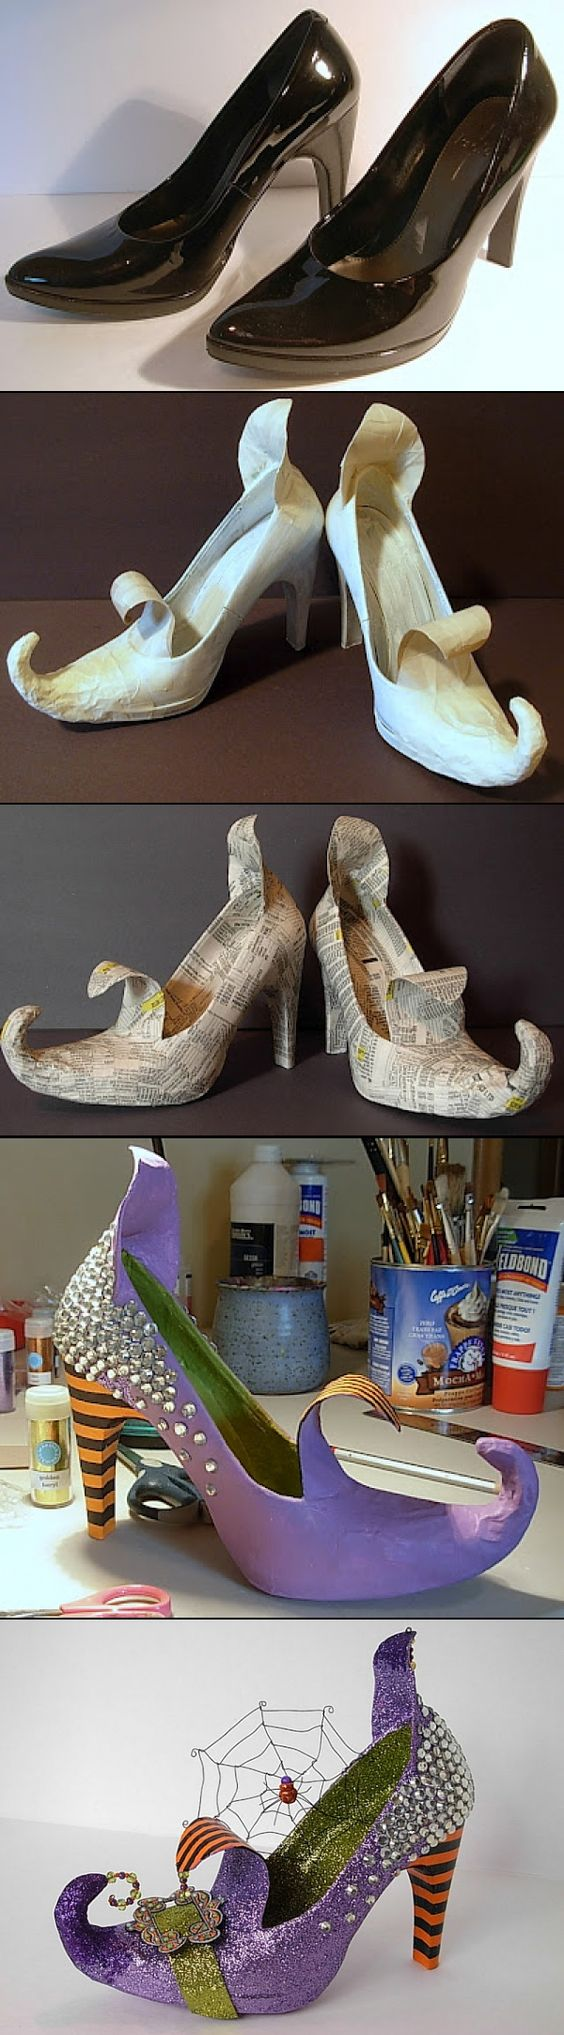 Make the coolest most wicked WITCH shoes from an old pair of your heels! | Dale detalles - Spooktacular Halloween DIYs, Crafts and Projects - The BEST Do it Yourself Halloween Decorations #halloween #halloweendecorations